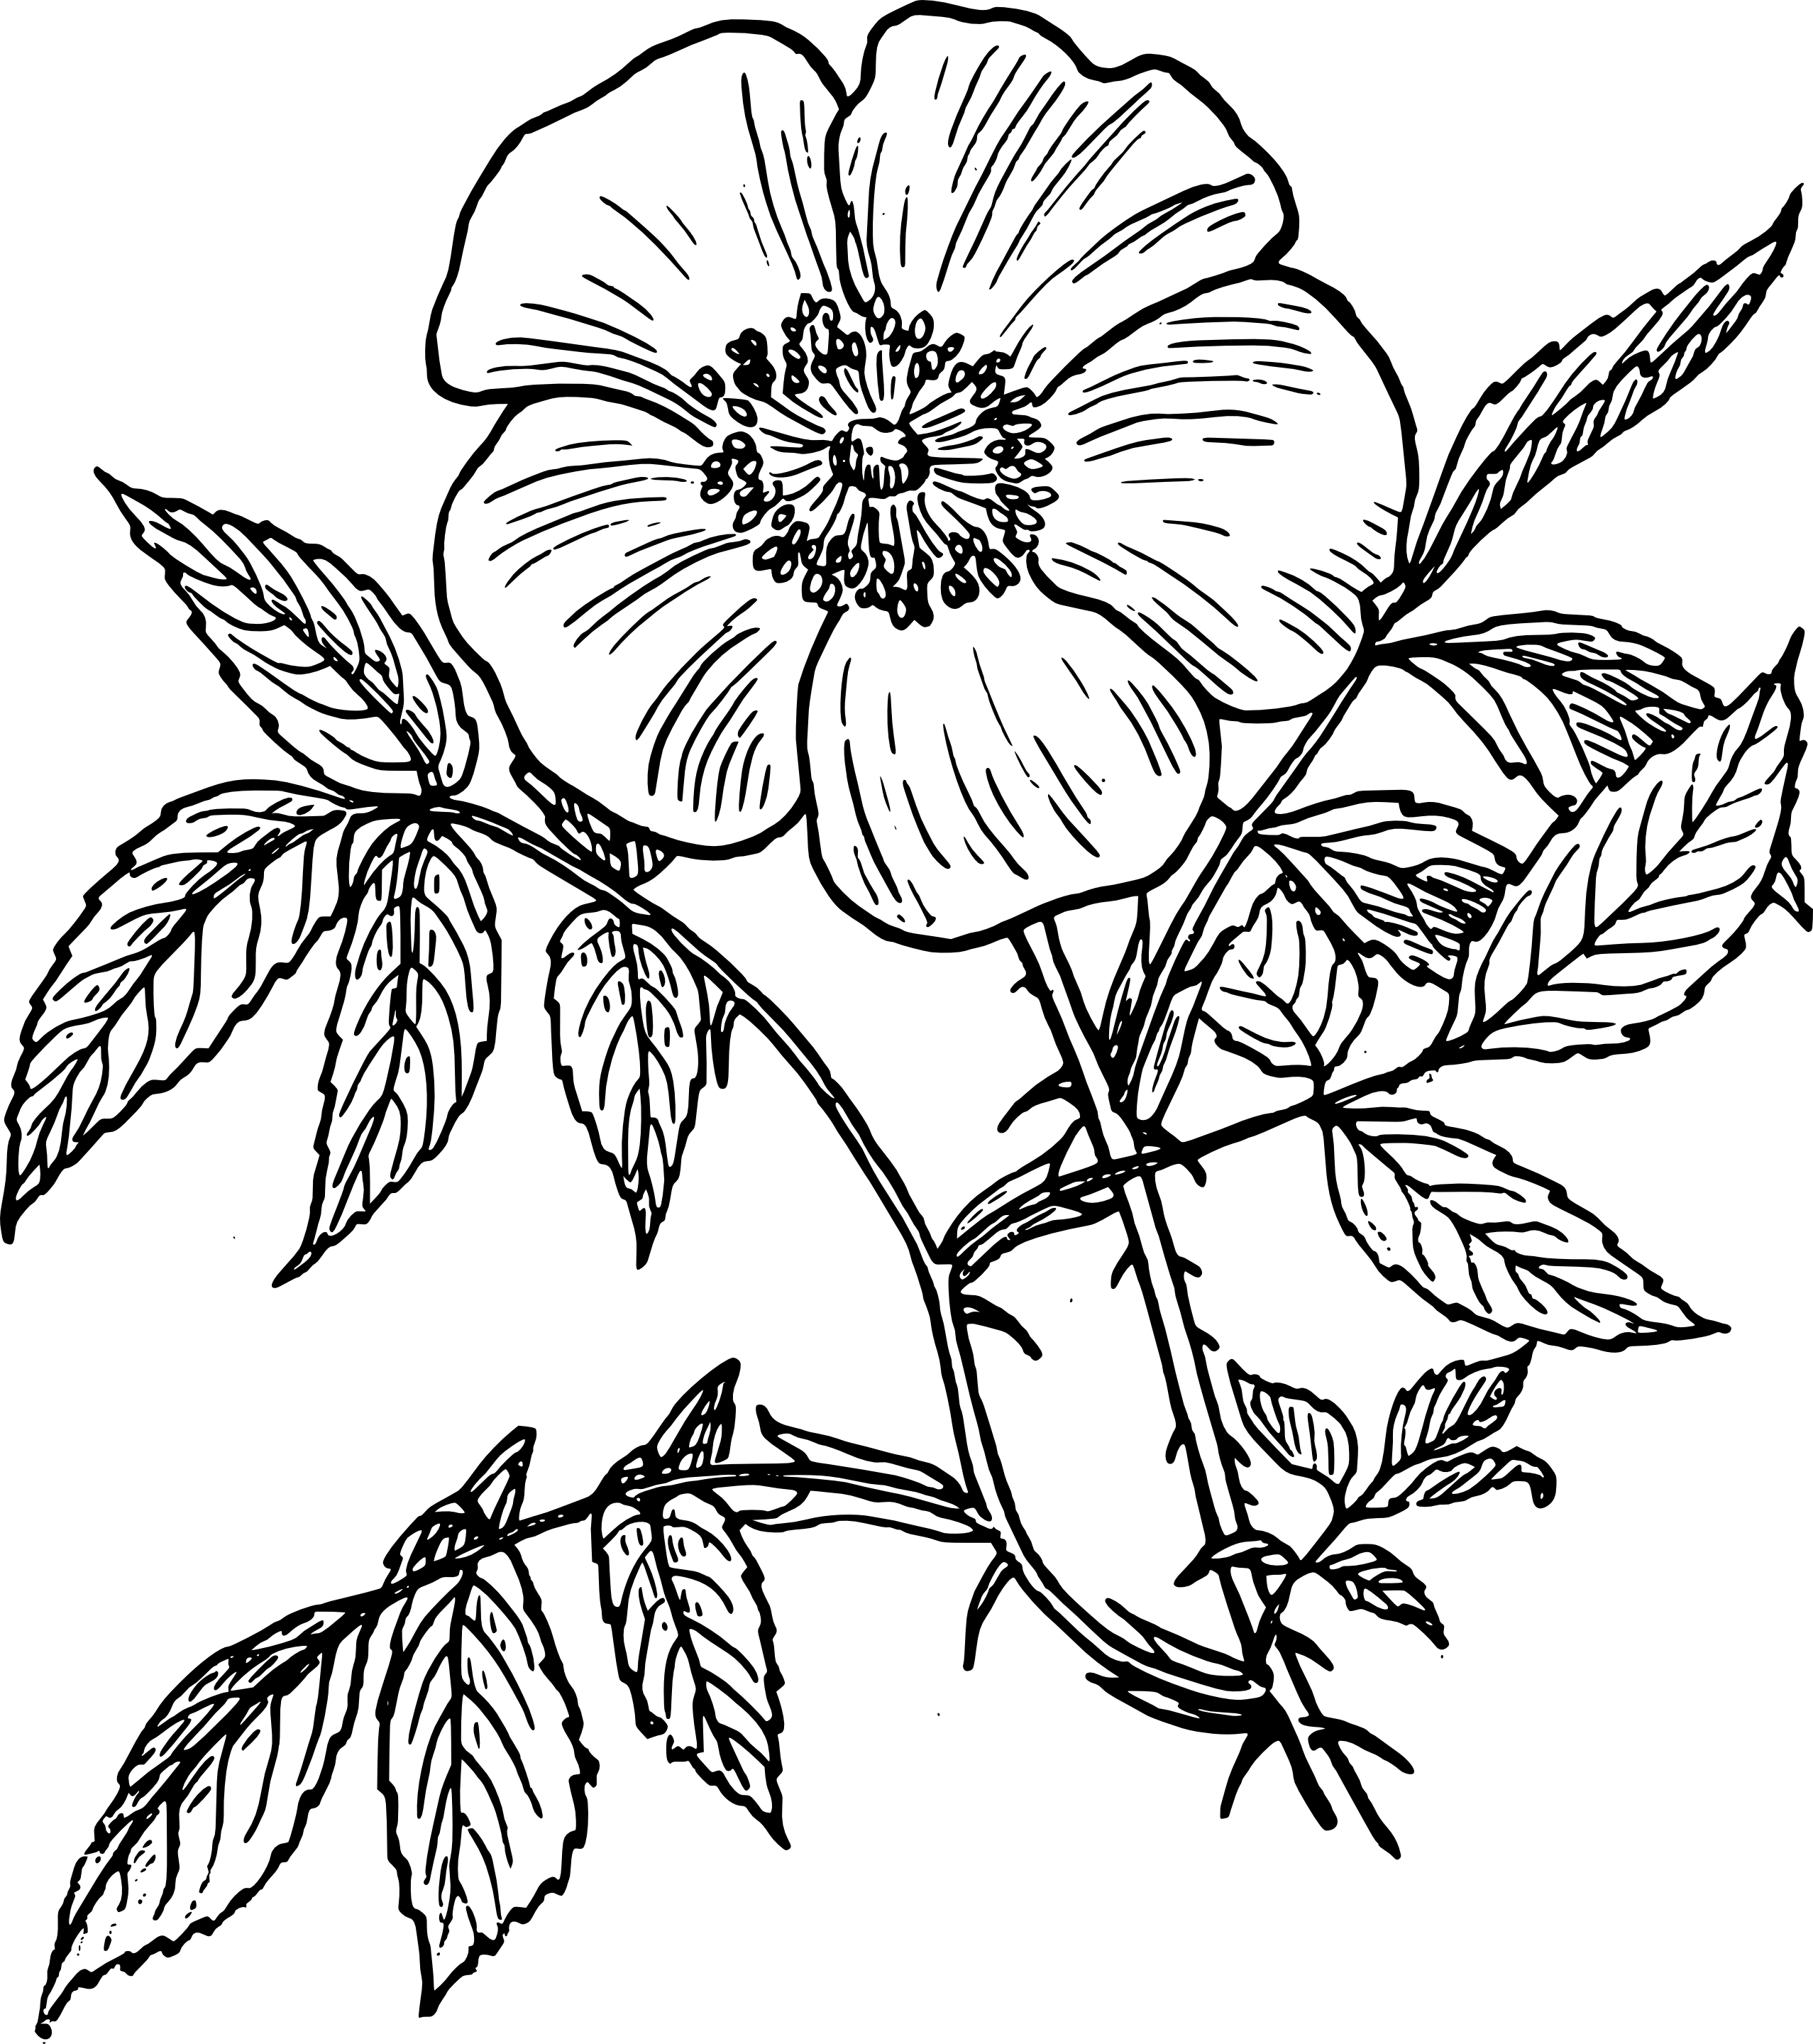 2555x2880 Photos Easy Rose Drawings In Black And White,